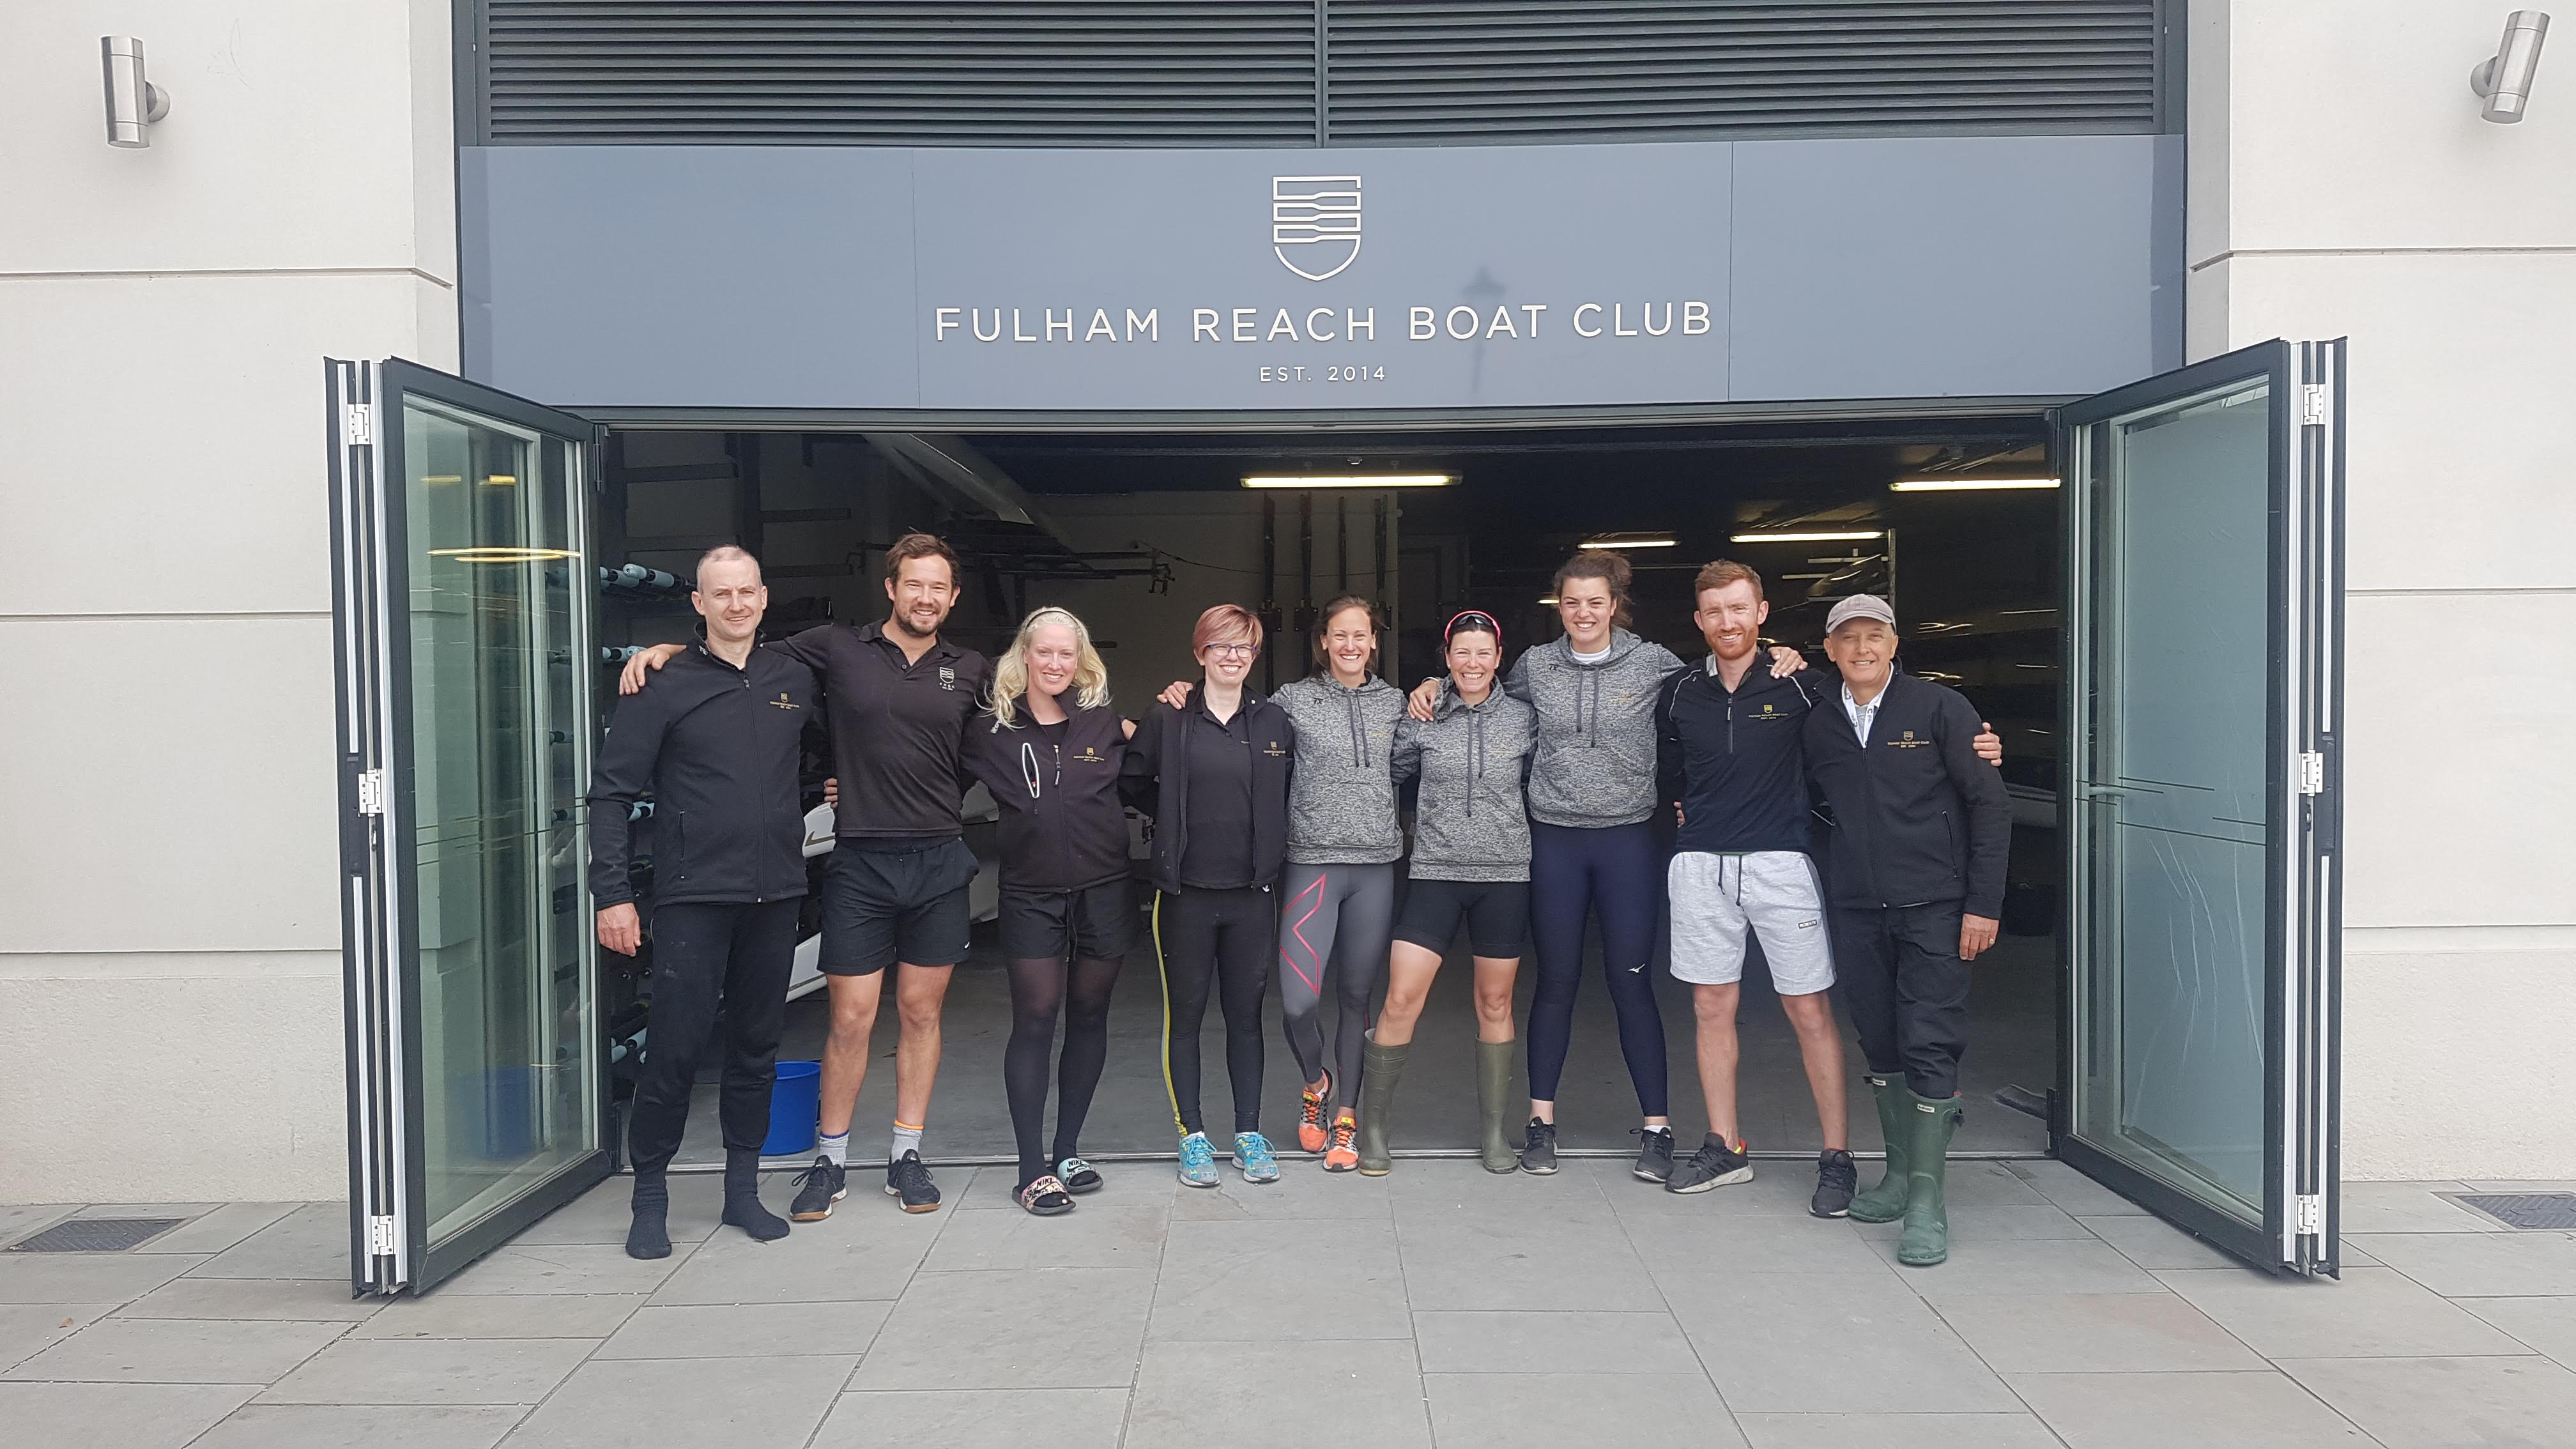 We're Hiring for a Boat Club Co-ordinator